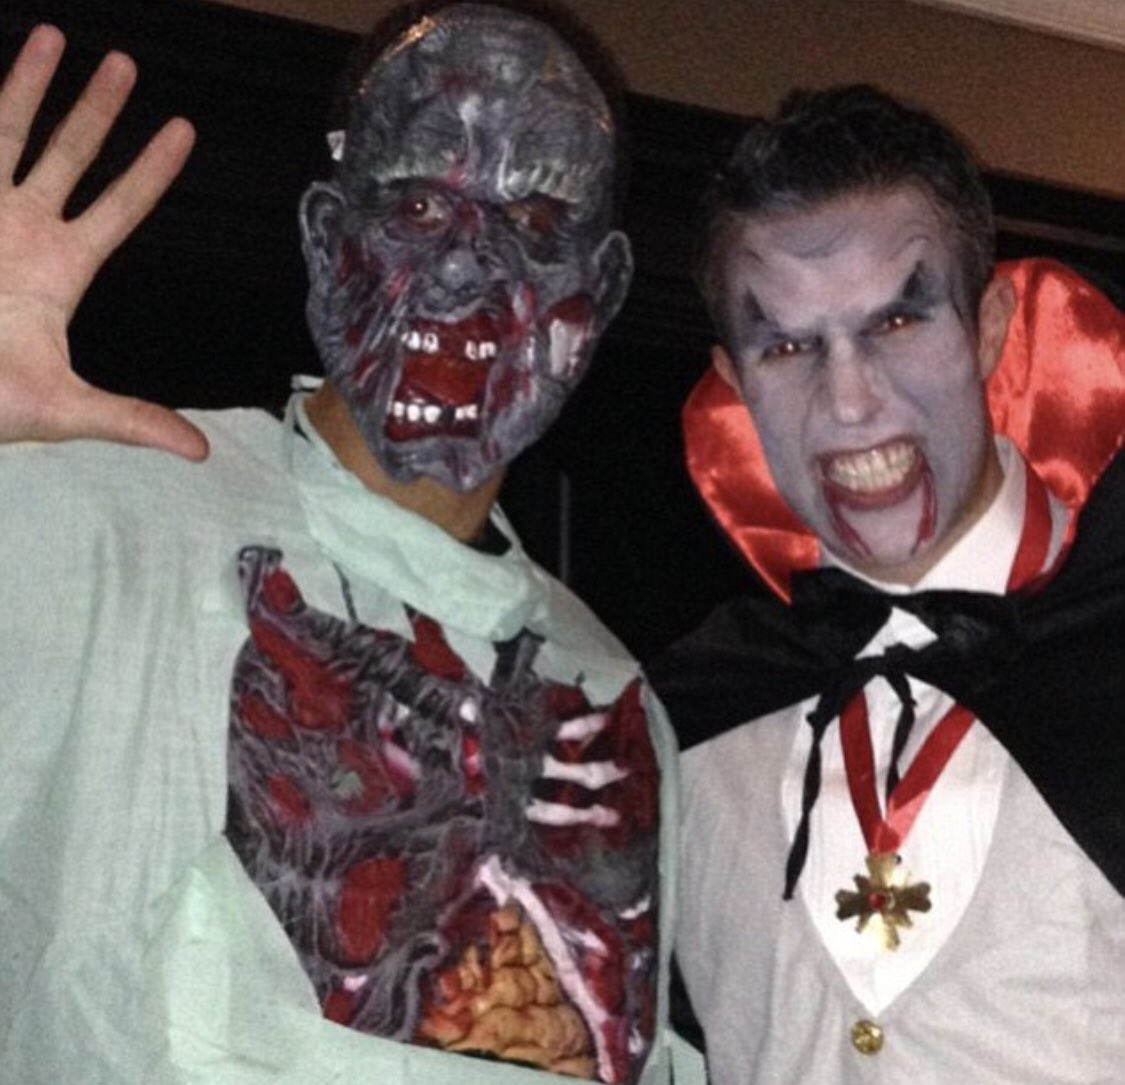 Name this geezer next to me?! 😂 #Halloween #tb  What a player btw #winner #leader 👑 🏆